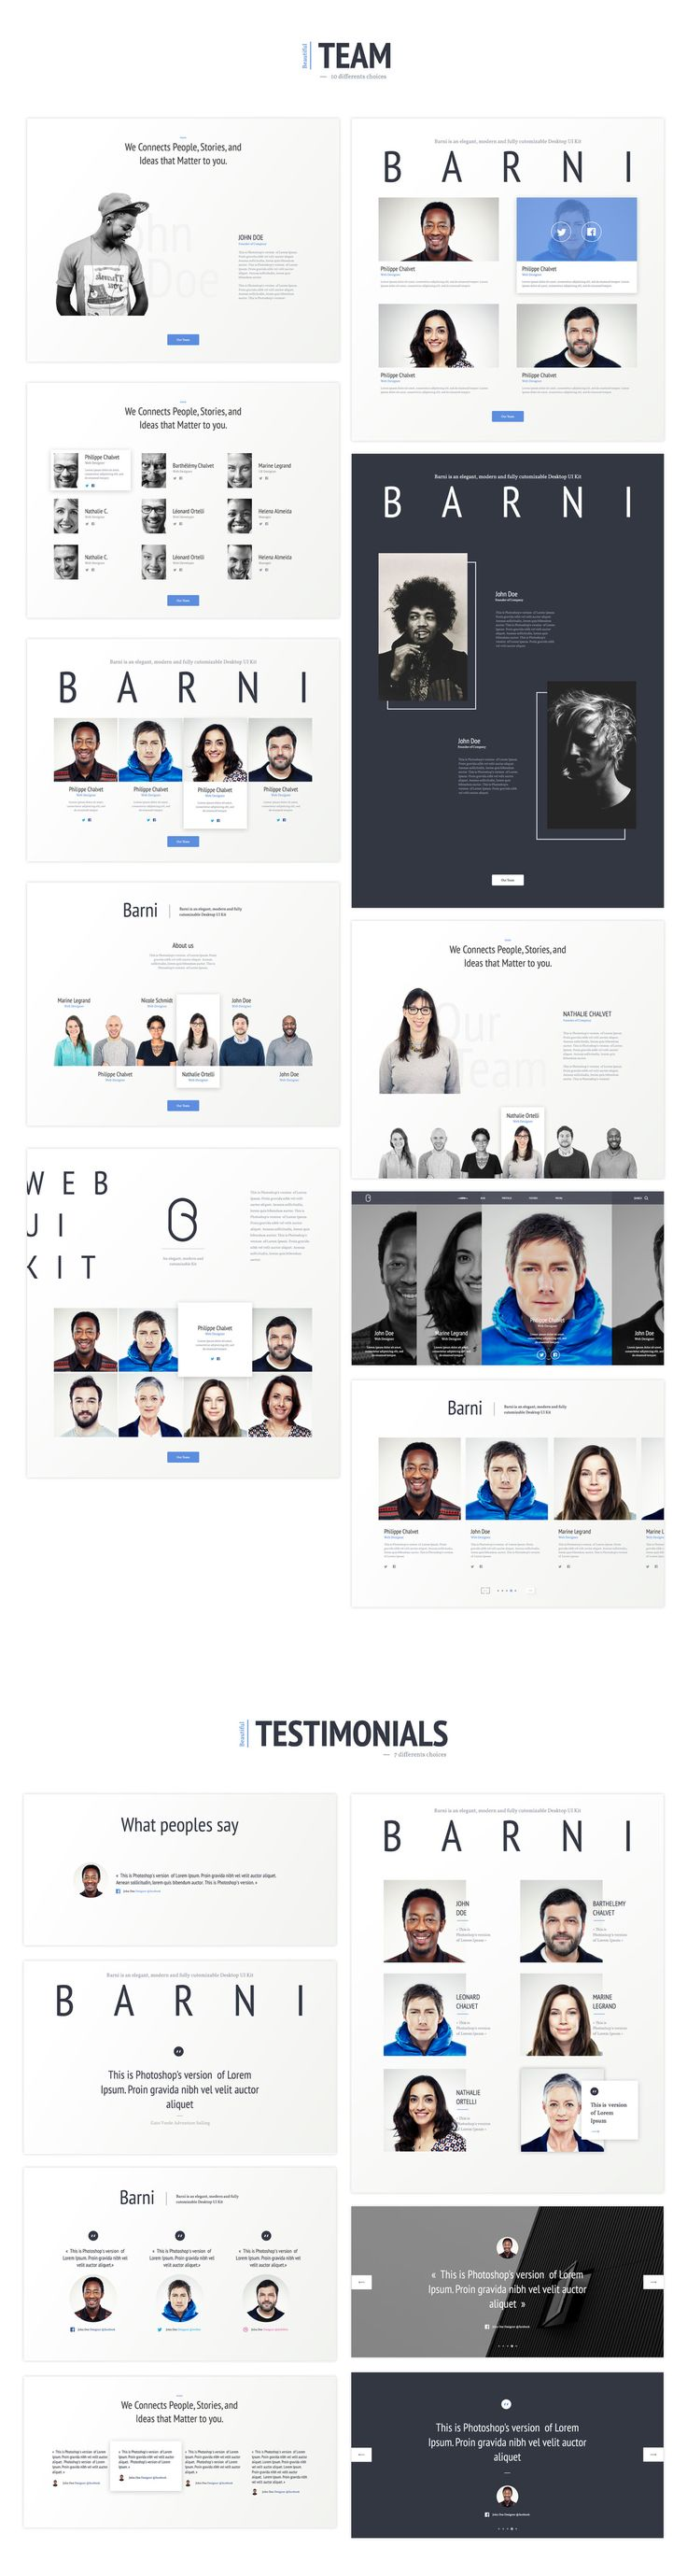 Barni-for-Startup by AgenceMe on Creative Market